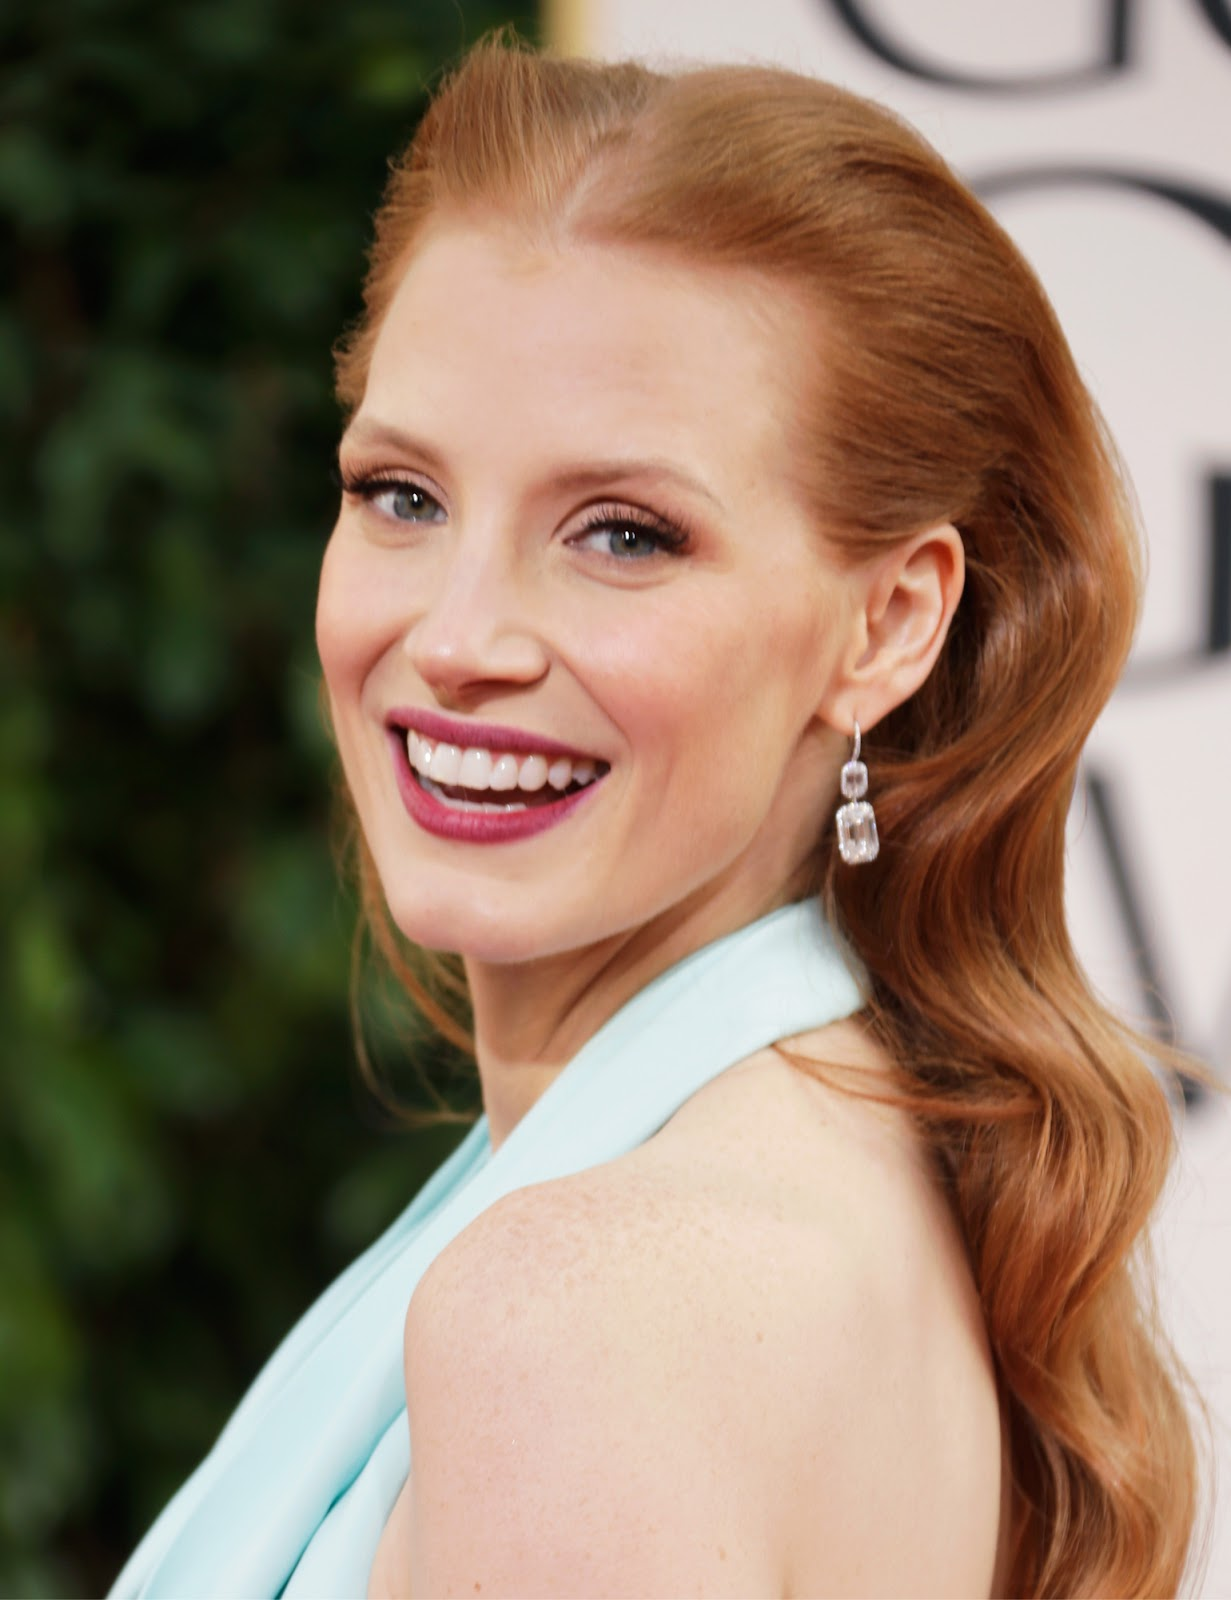 http://1.bp.blogspot.com/-BhK3ZhTxyjE/UPOG7gaOOYI/AAAAAAABQvA/hWdsEiPCCSw/s1600/Jessica_Chastain-70th_Annual_Golden_Globe_Awards-Beverly_Hills-1_13_2013-001.jpg